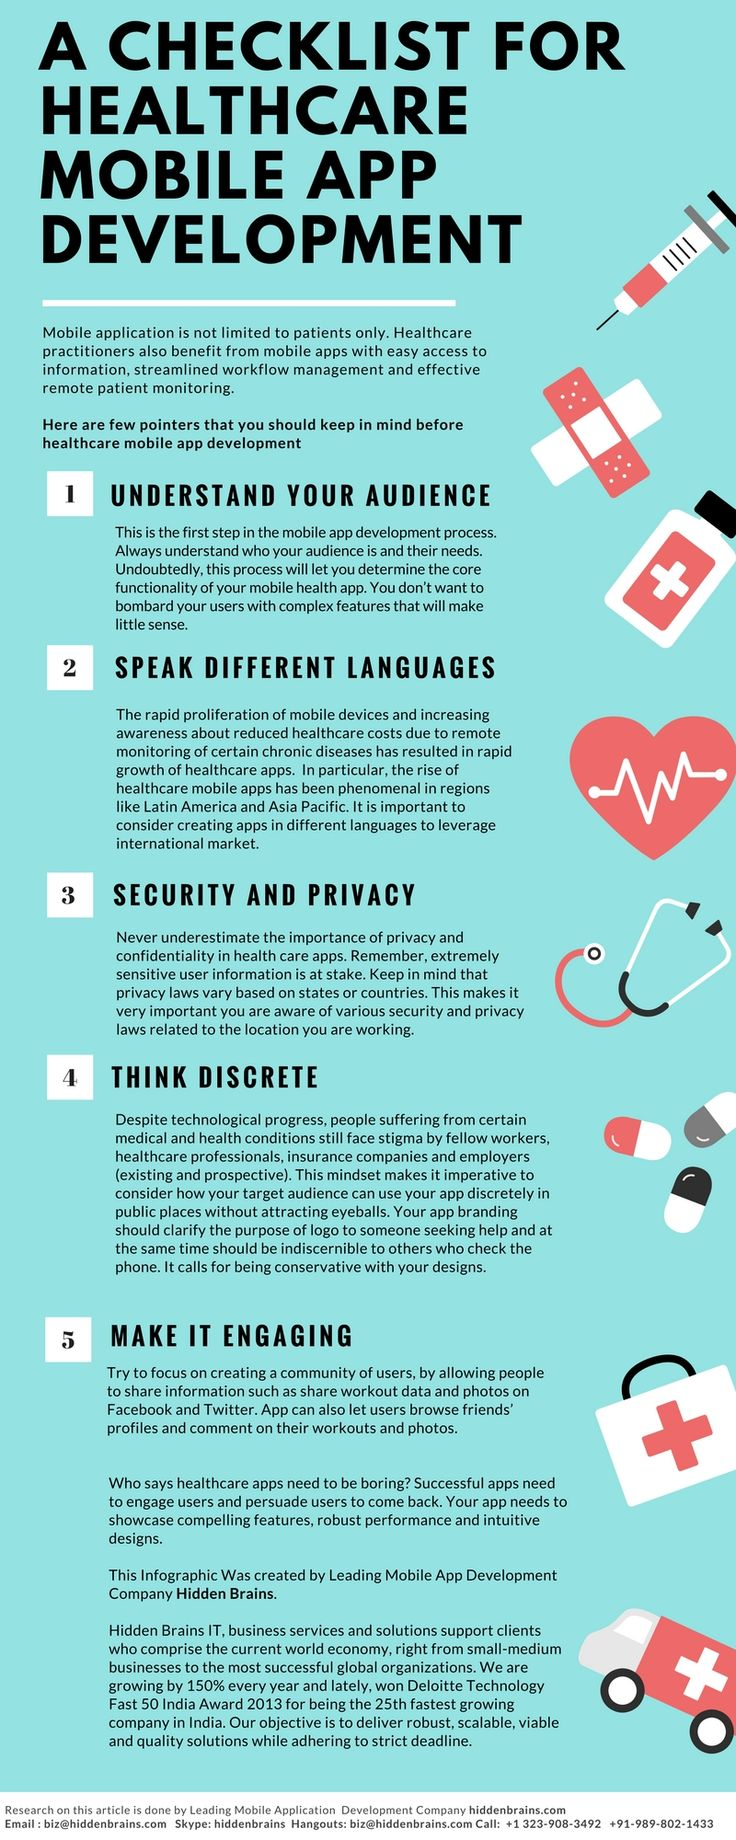 Checklist for Health Care mobile app development. In digitize generation, hospitals and medical industry will need apps to track and mange day today operations.